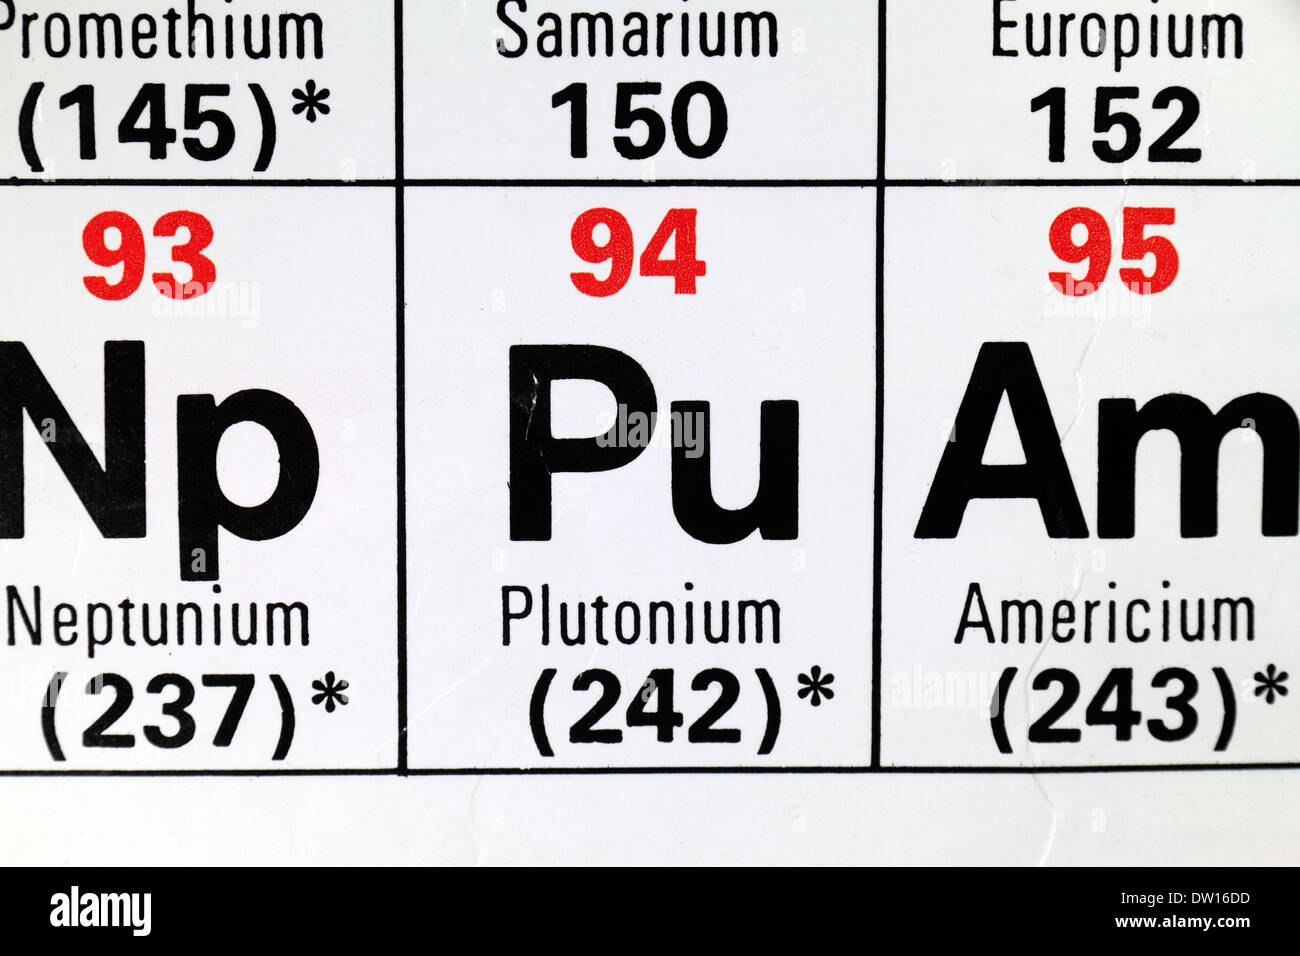 Plutonium (Pu) as it appears on the Periodic Table. - Stock Image